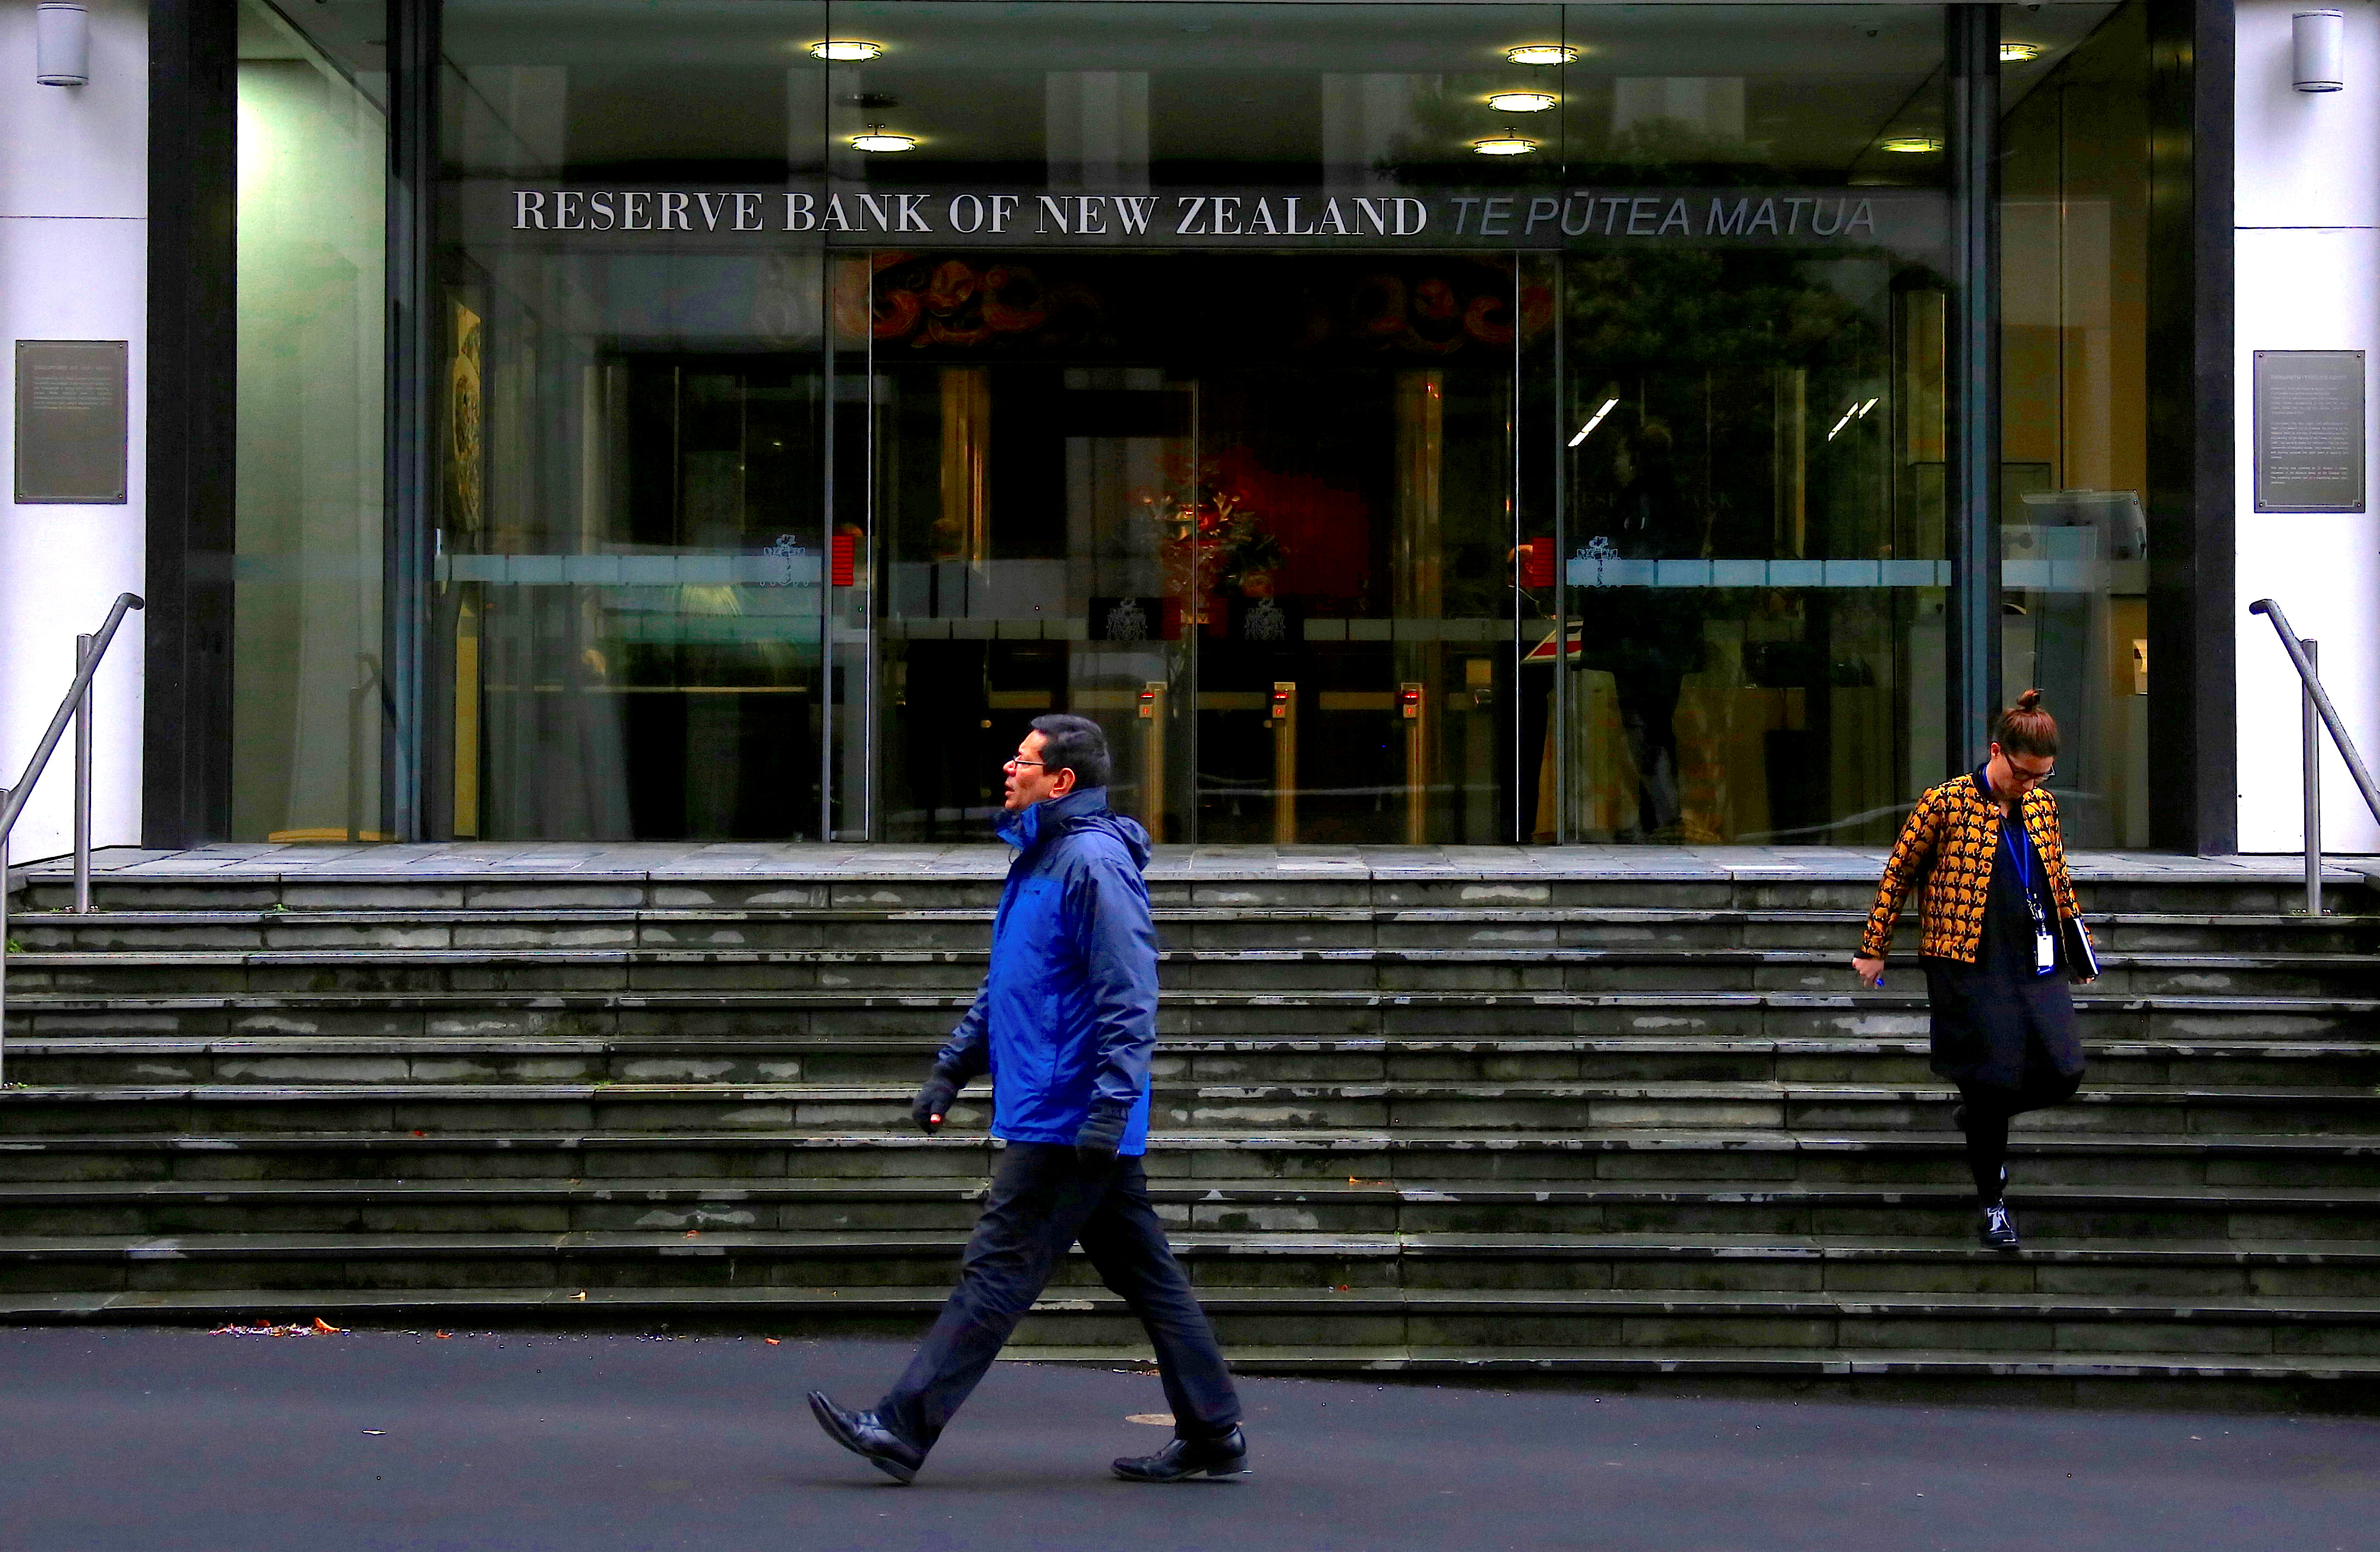 Pedestrians walk near the main entrance to the Reserve Bank of New Zealand located in central Wellington, New Zealand, July 3, 2017.   REUTERS/David Gray/File Photo